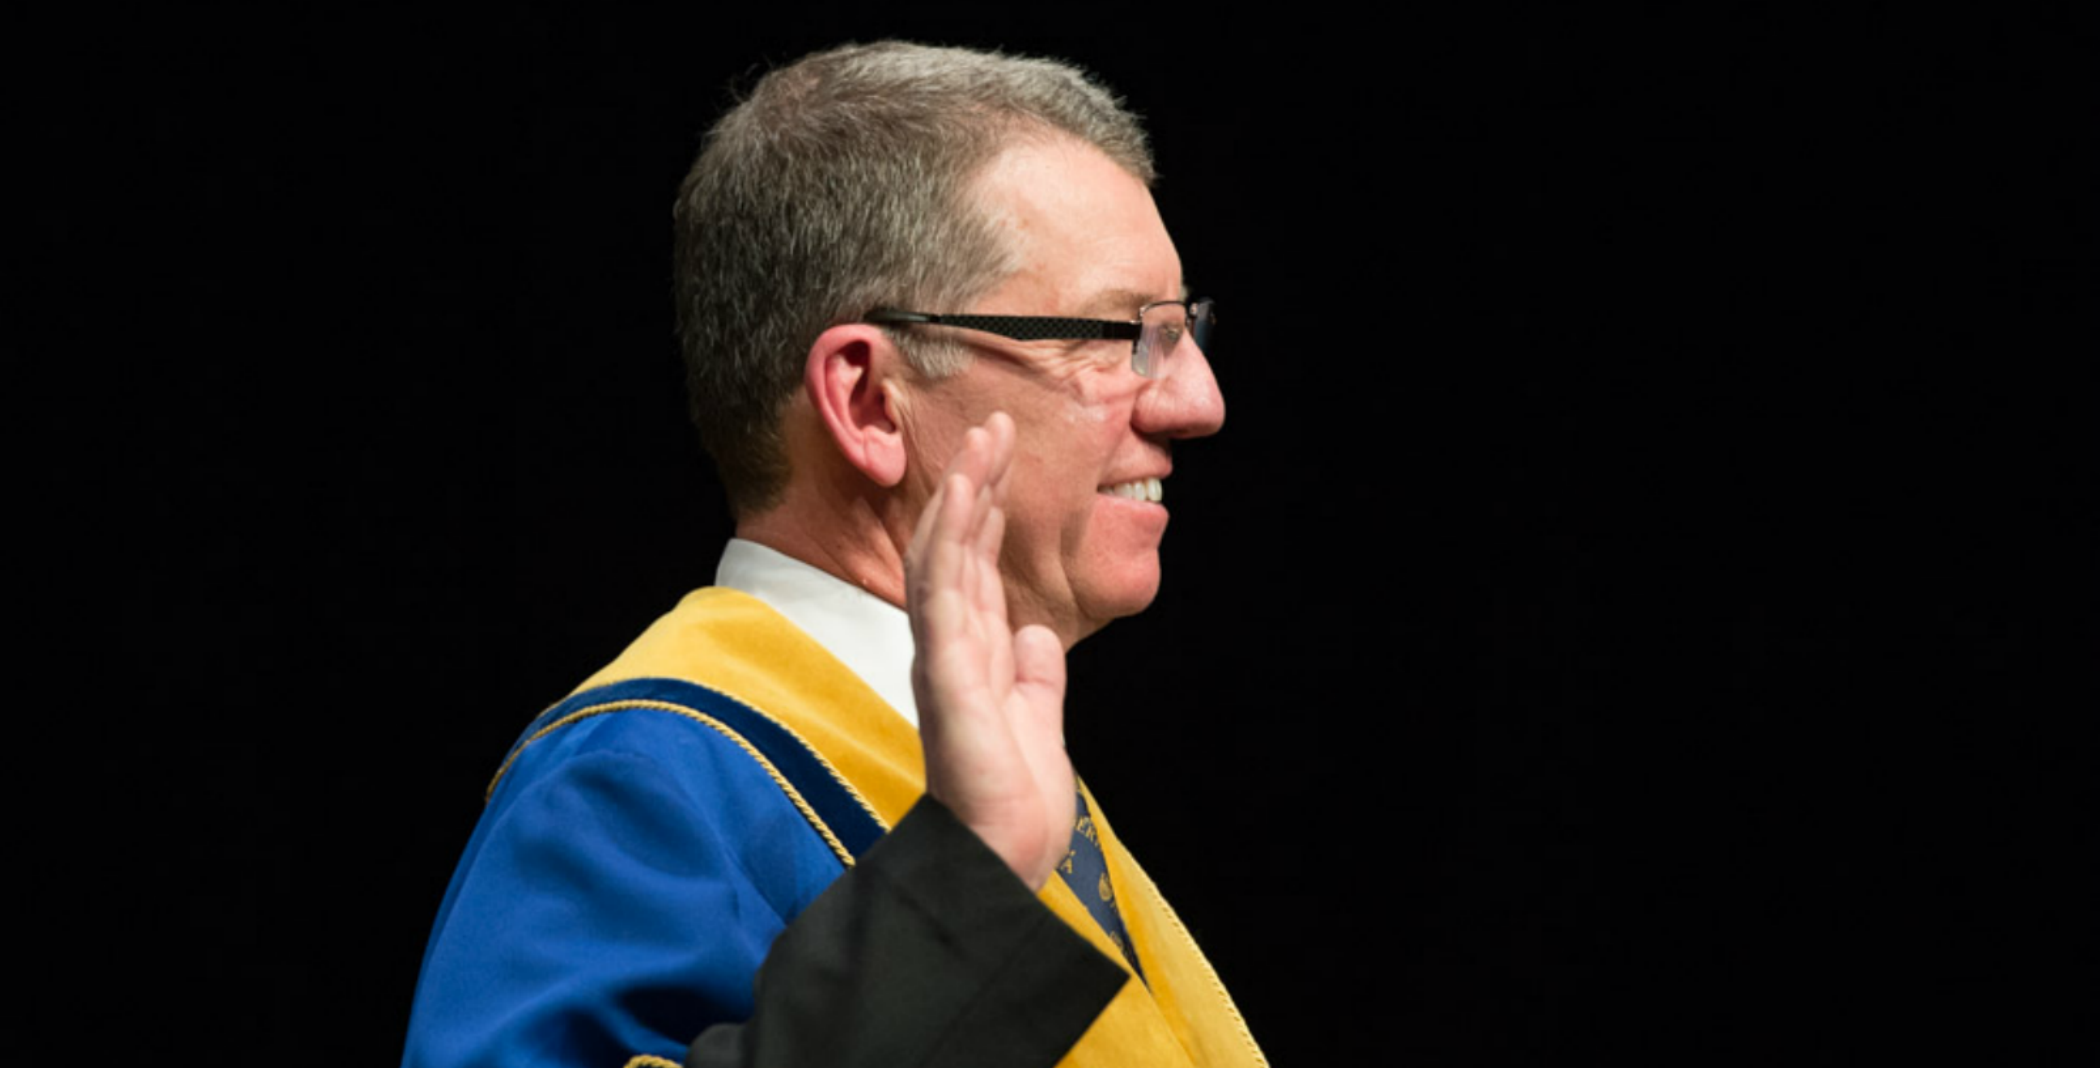 U of A President David Turpin takes the oath of office.